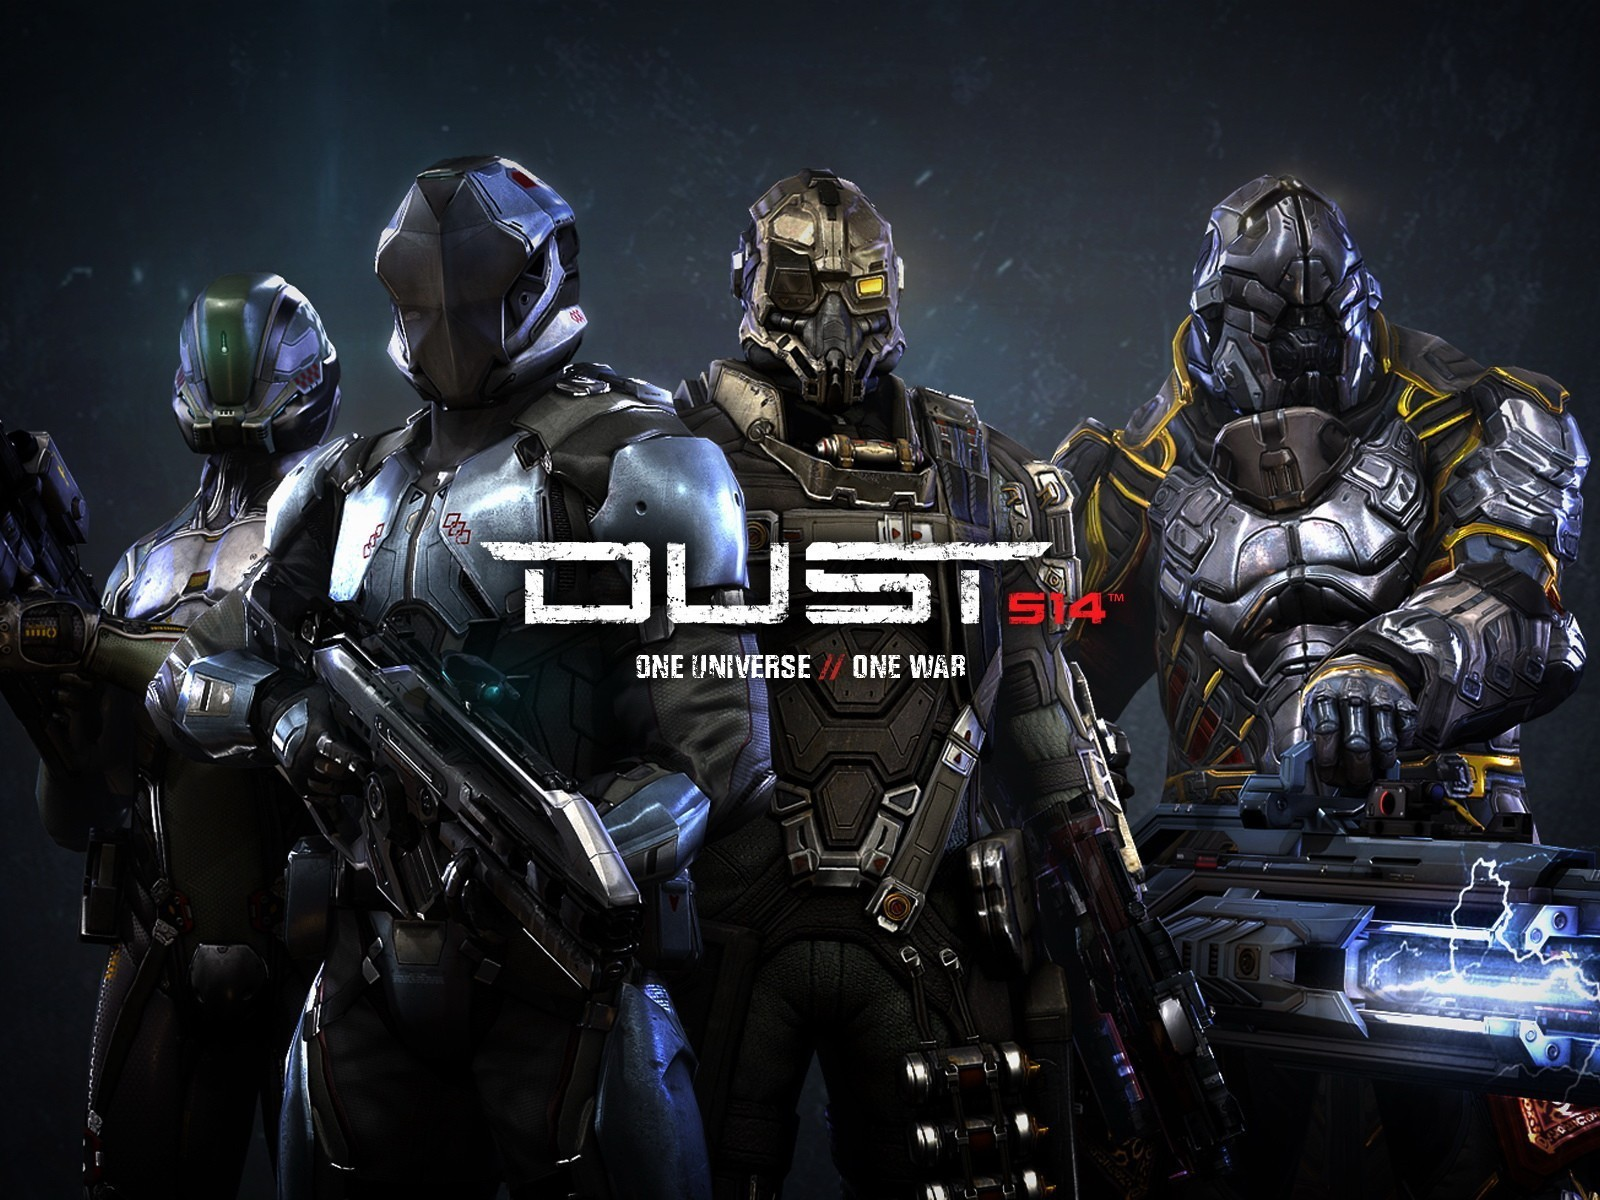 Cgi Dust 514 Video Games Wallpaper